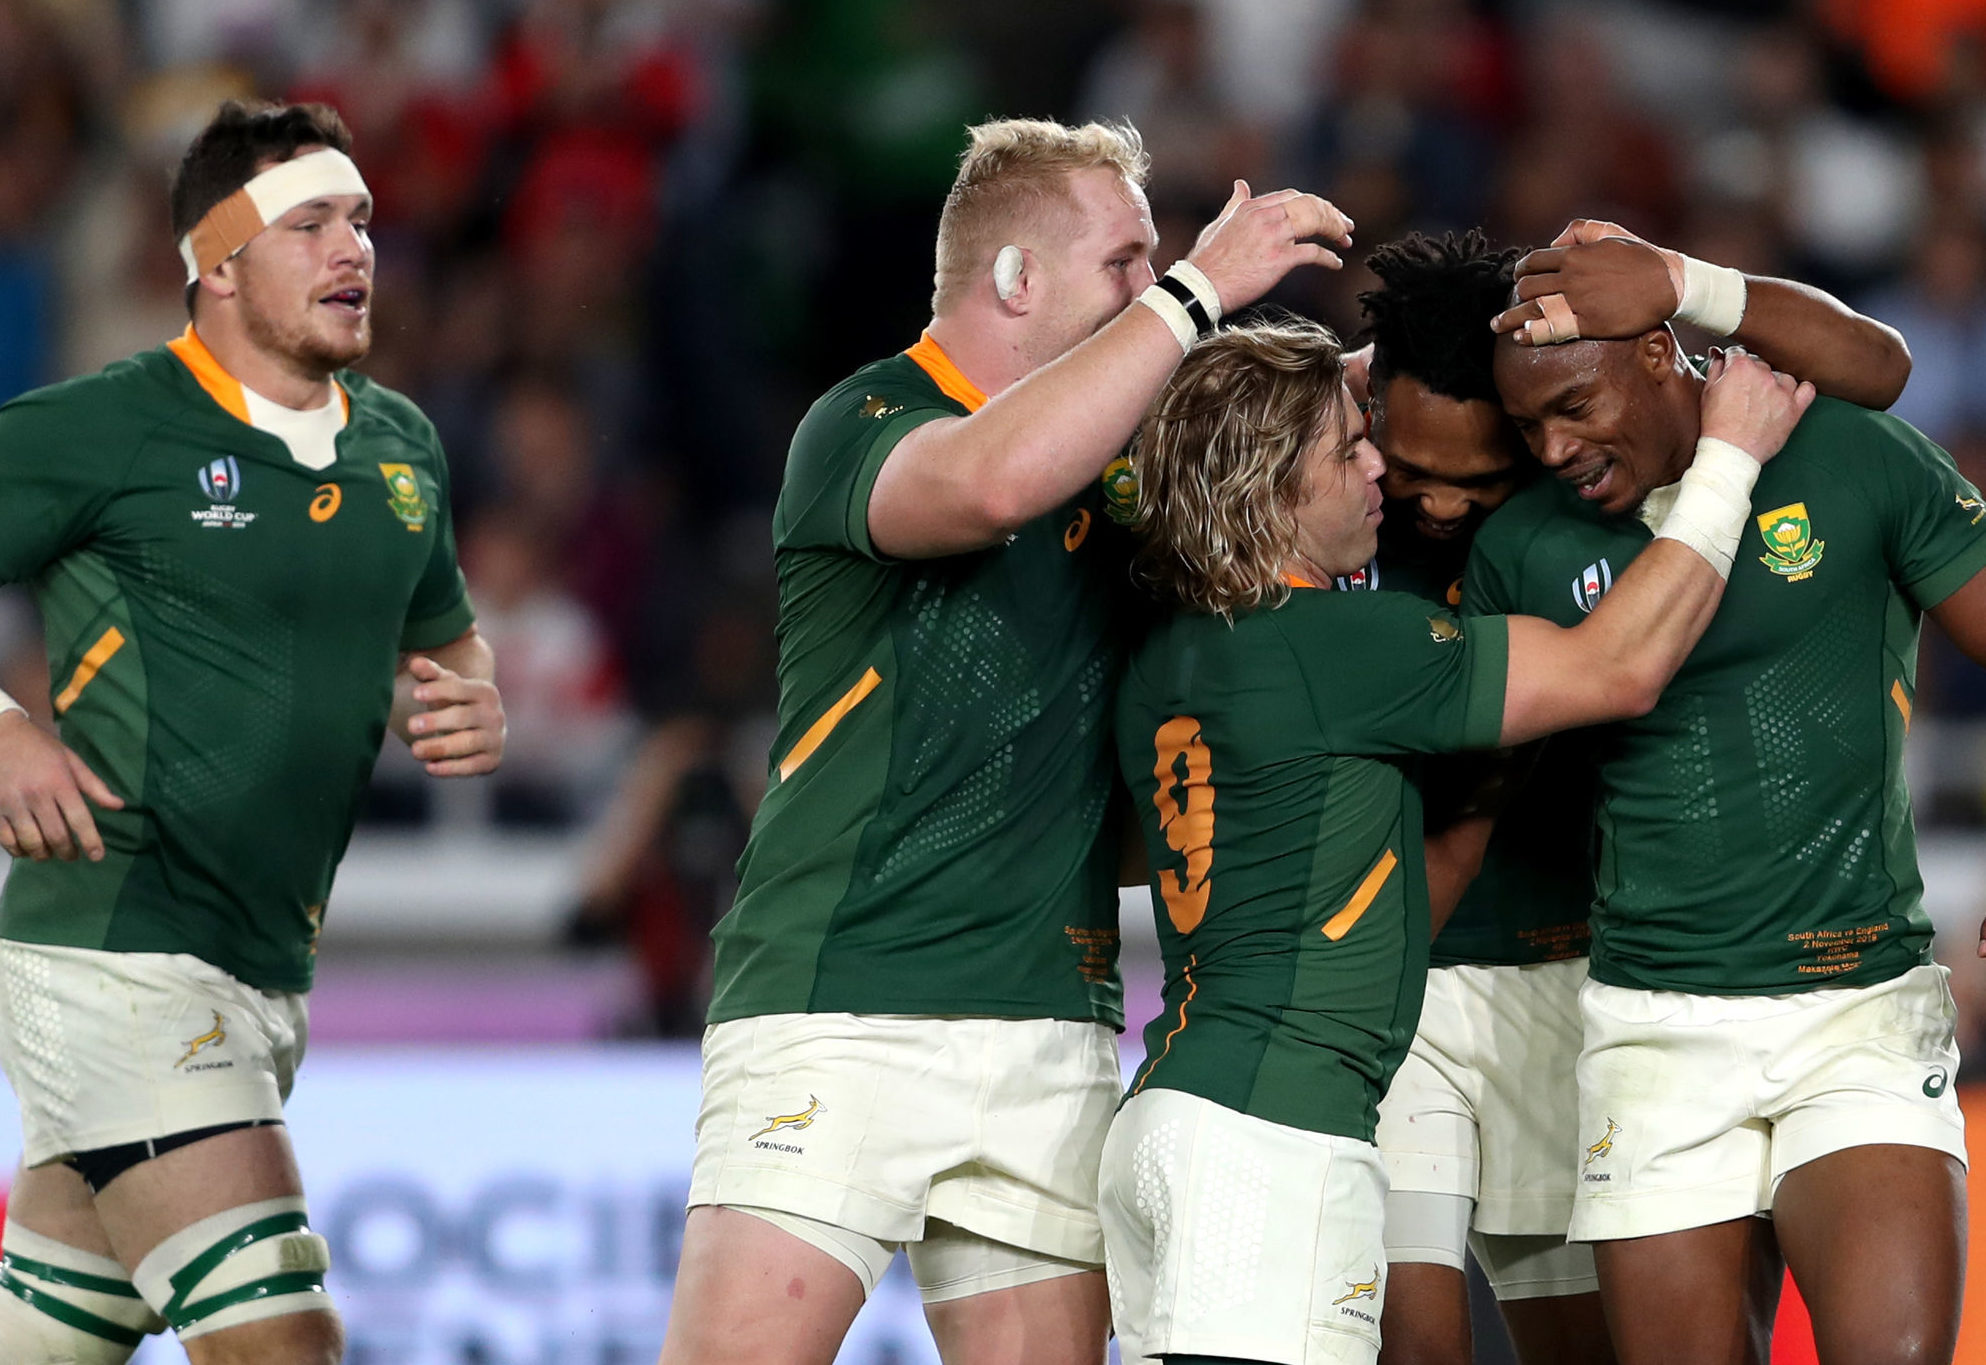 South Africa's Makazole Mapimpi (right) celebrates with team-mates after scoring his side's first try of the game during the 2019 Rugby World Cup final.